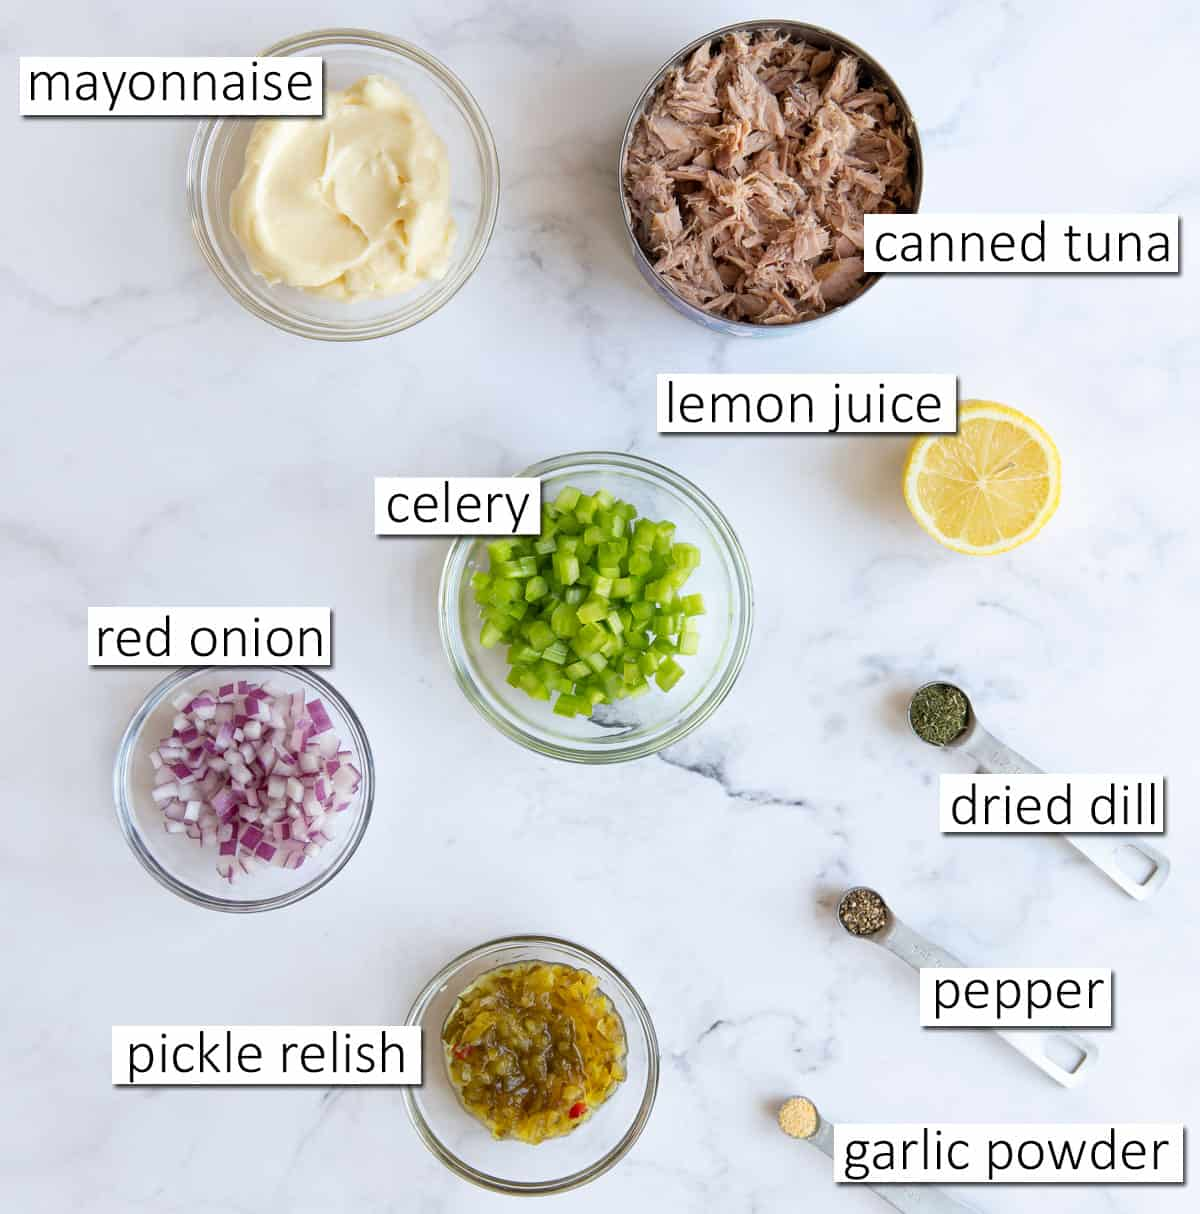 Overhead view of ingredients needed to make tuna salad.